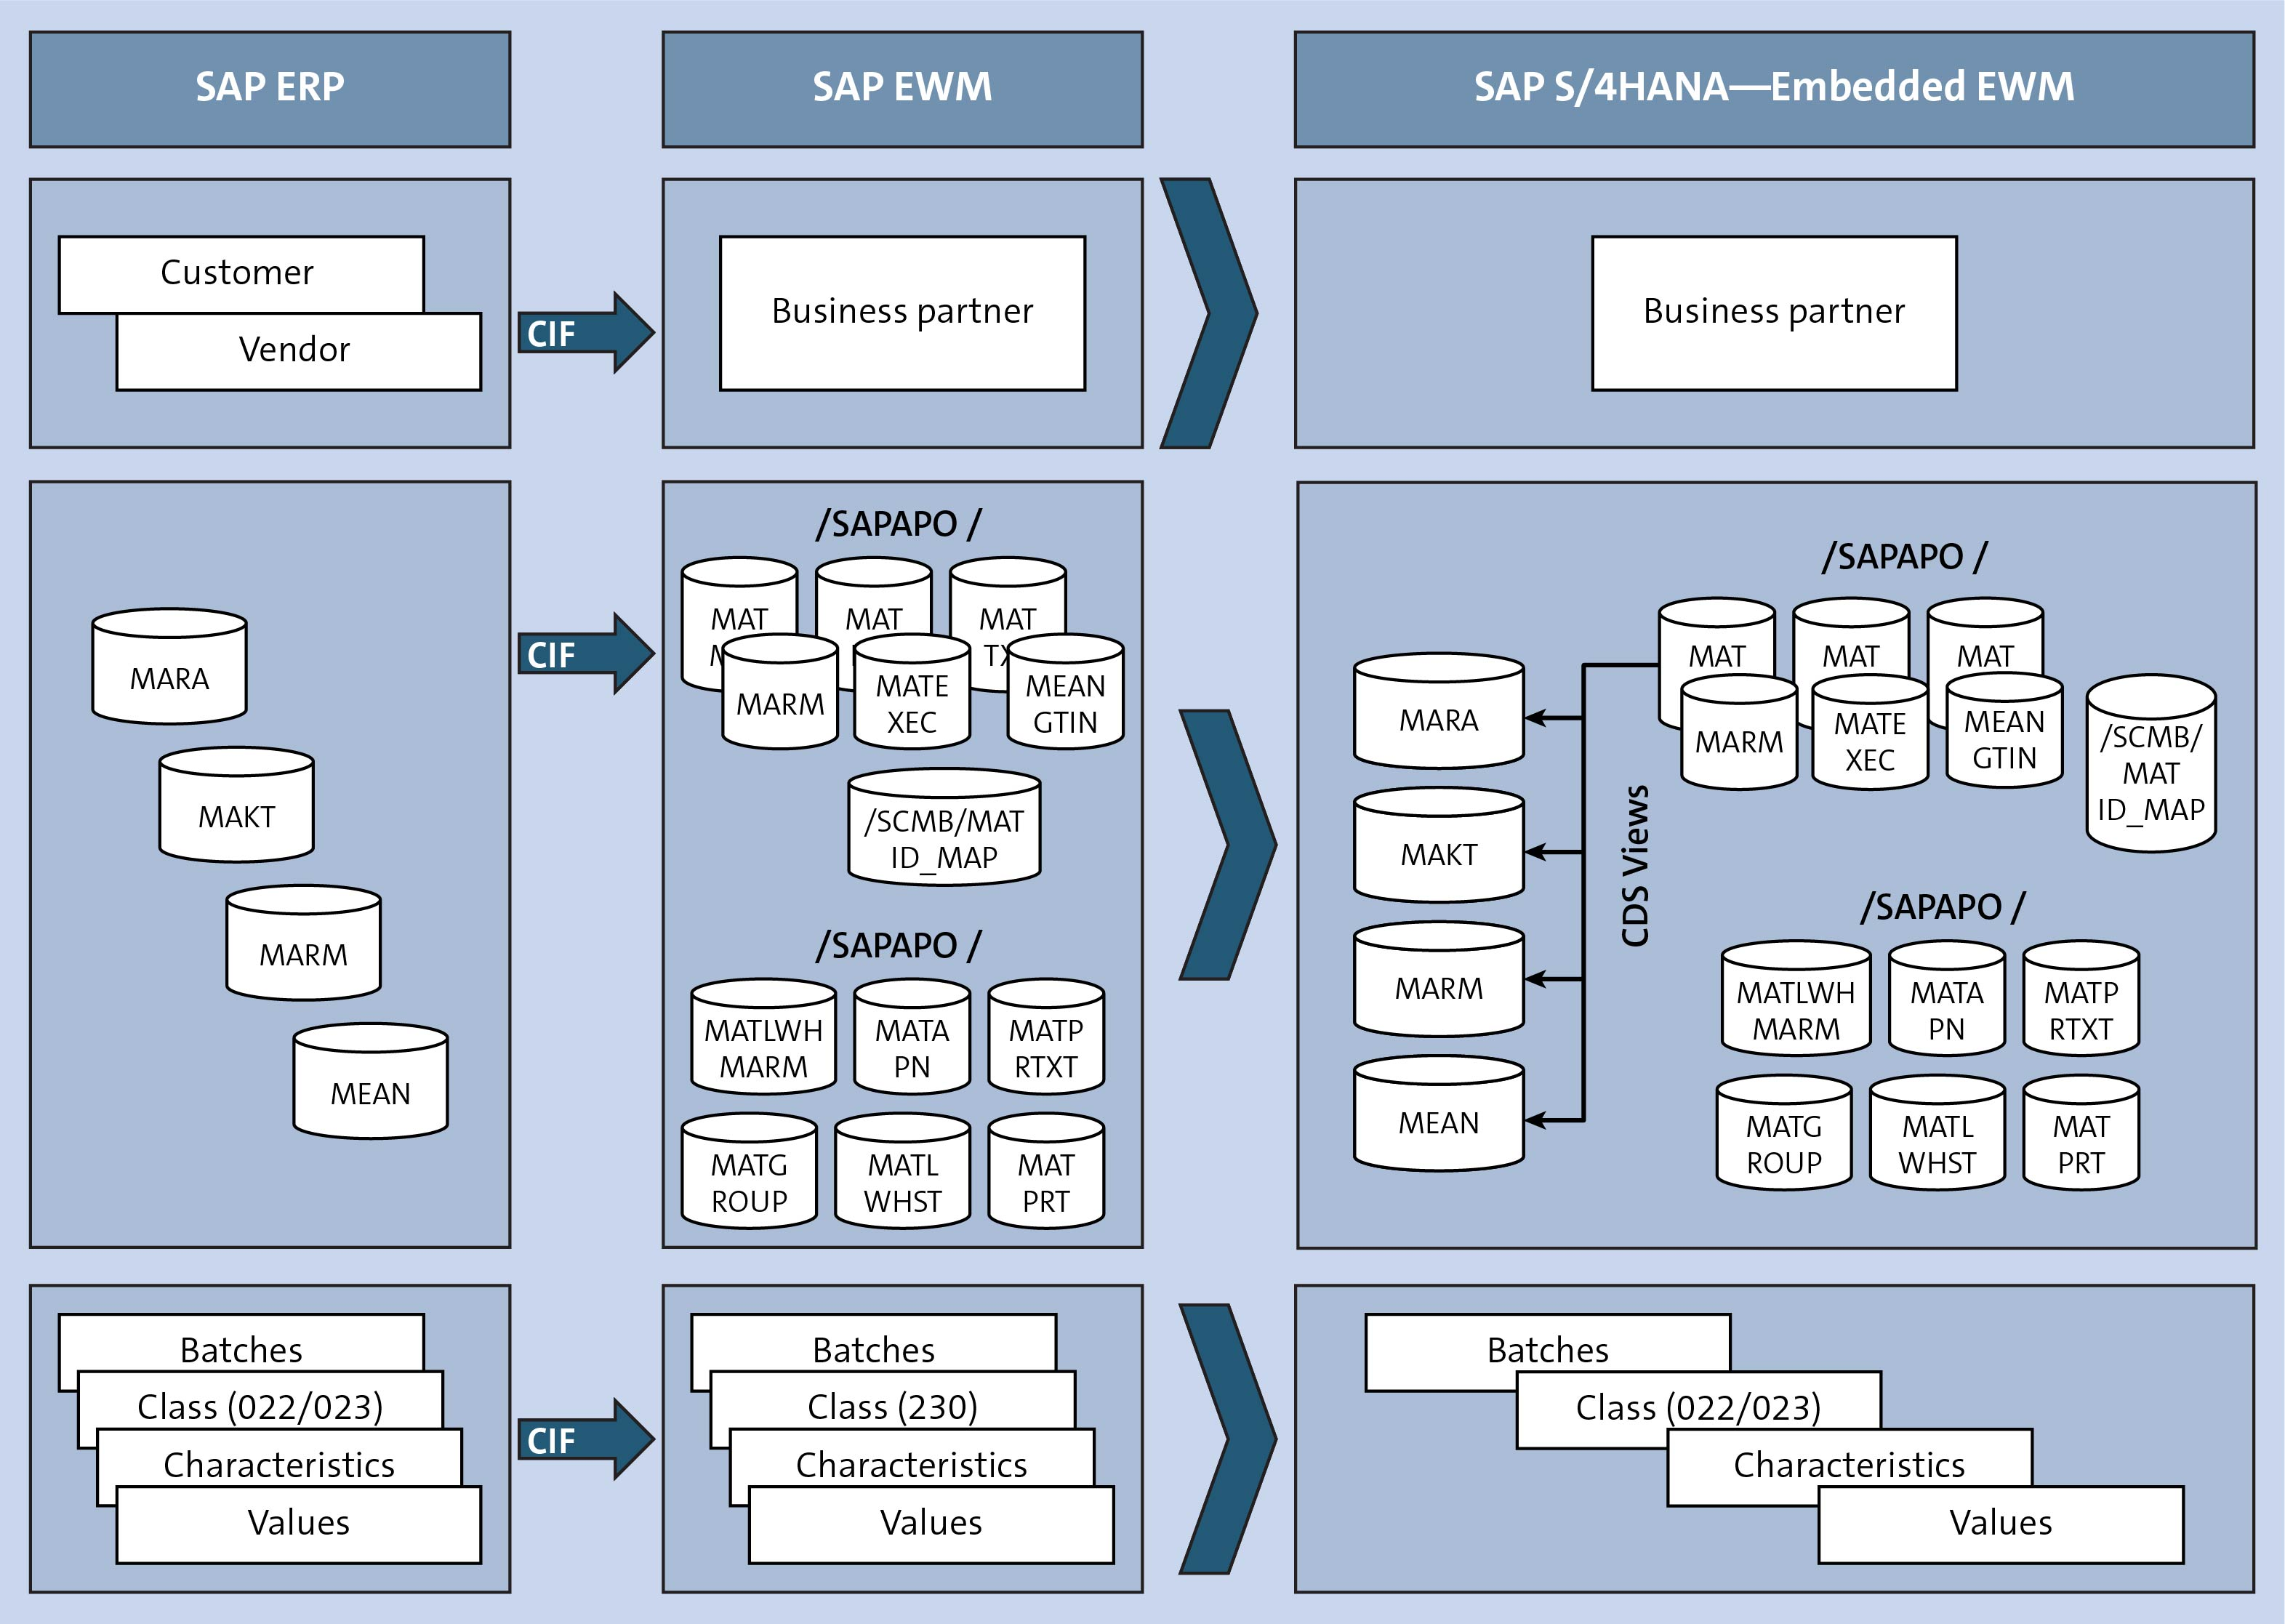 SAP ERP to SAP S/4HANA WM Map